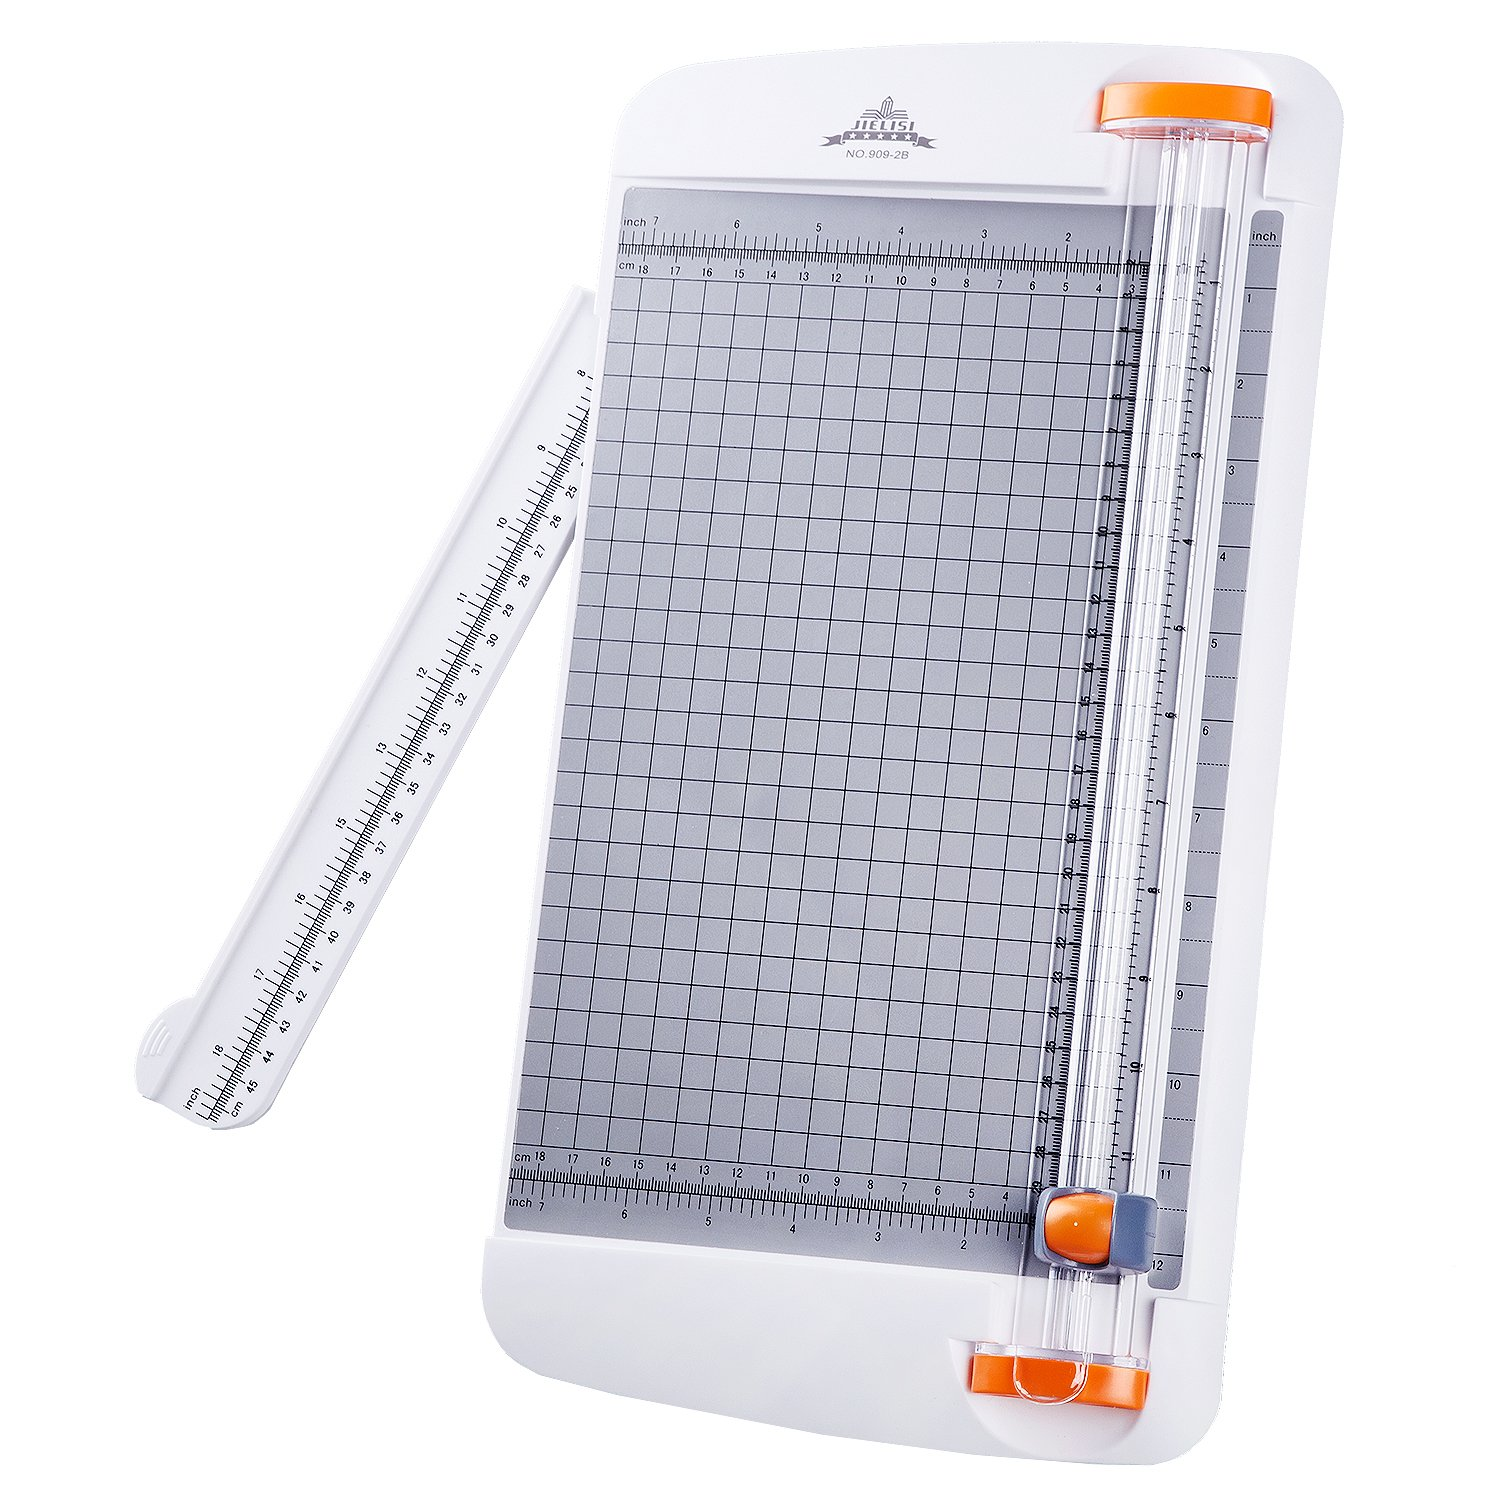 Work4U Titanium 12 Inch Paper Cutter, A4 Paper Trimmer with Automatic Security Safeguard Guillotine for Coupon, Craft Paper, Label and Photo, White (909-2B)